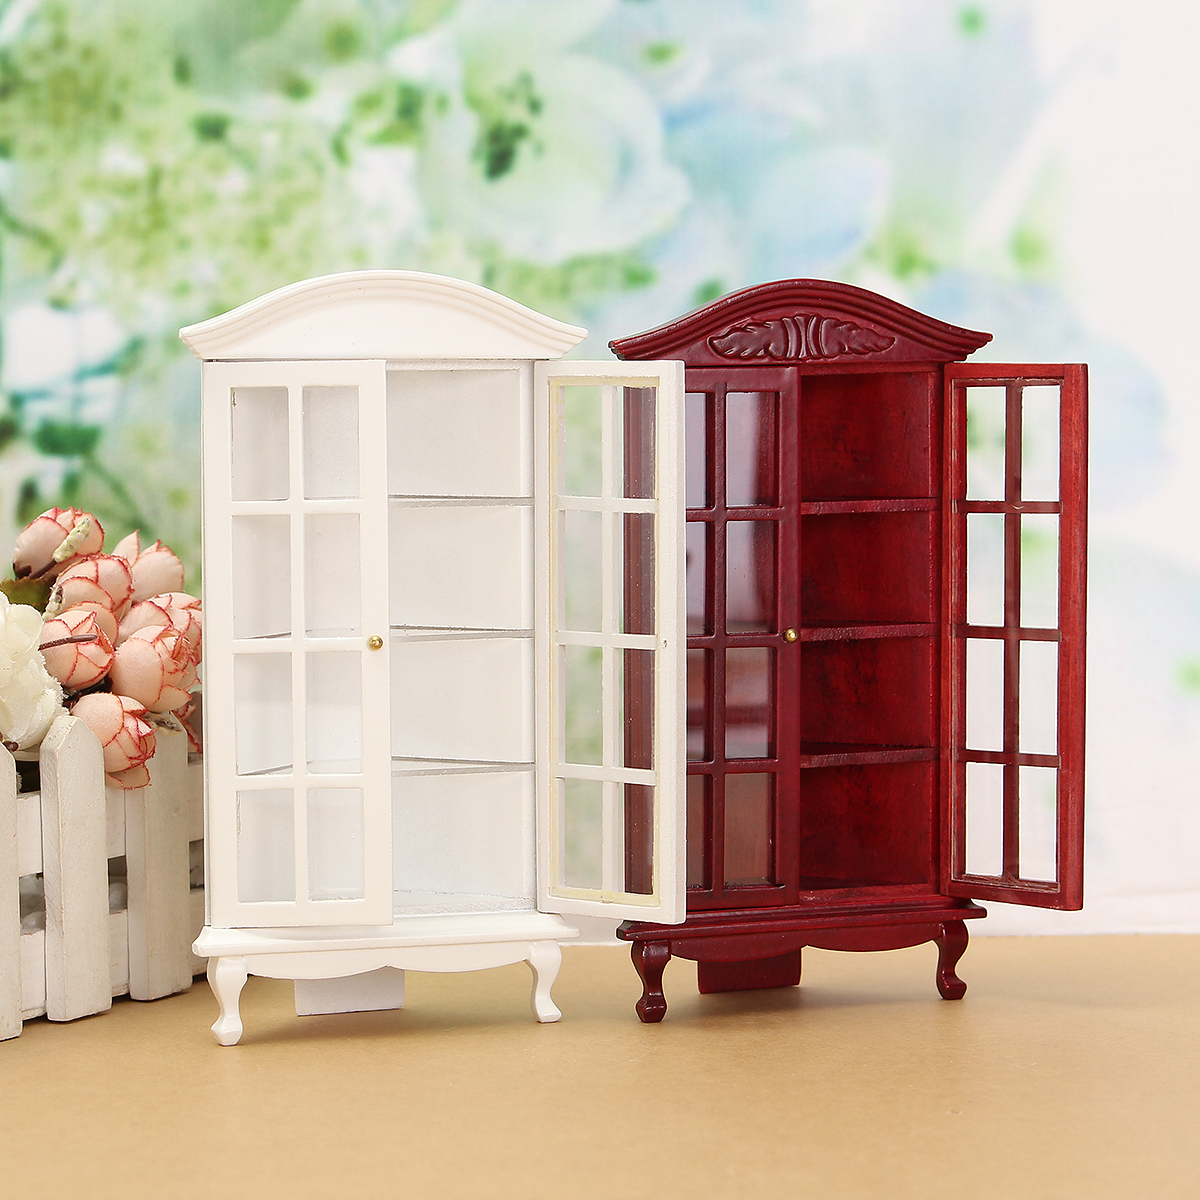 1/12 Dollhouse Miniature Furniture Modern White Red Wooden Display Cabinet Doll House Accessories